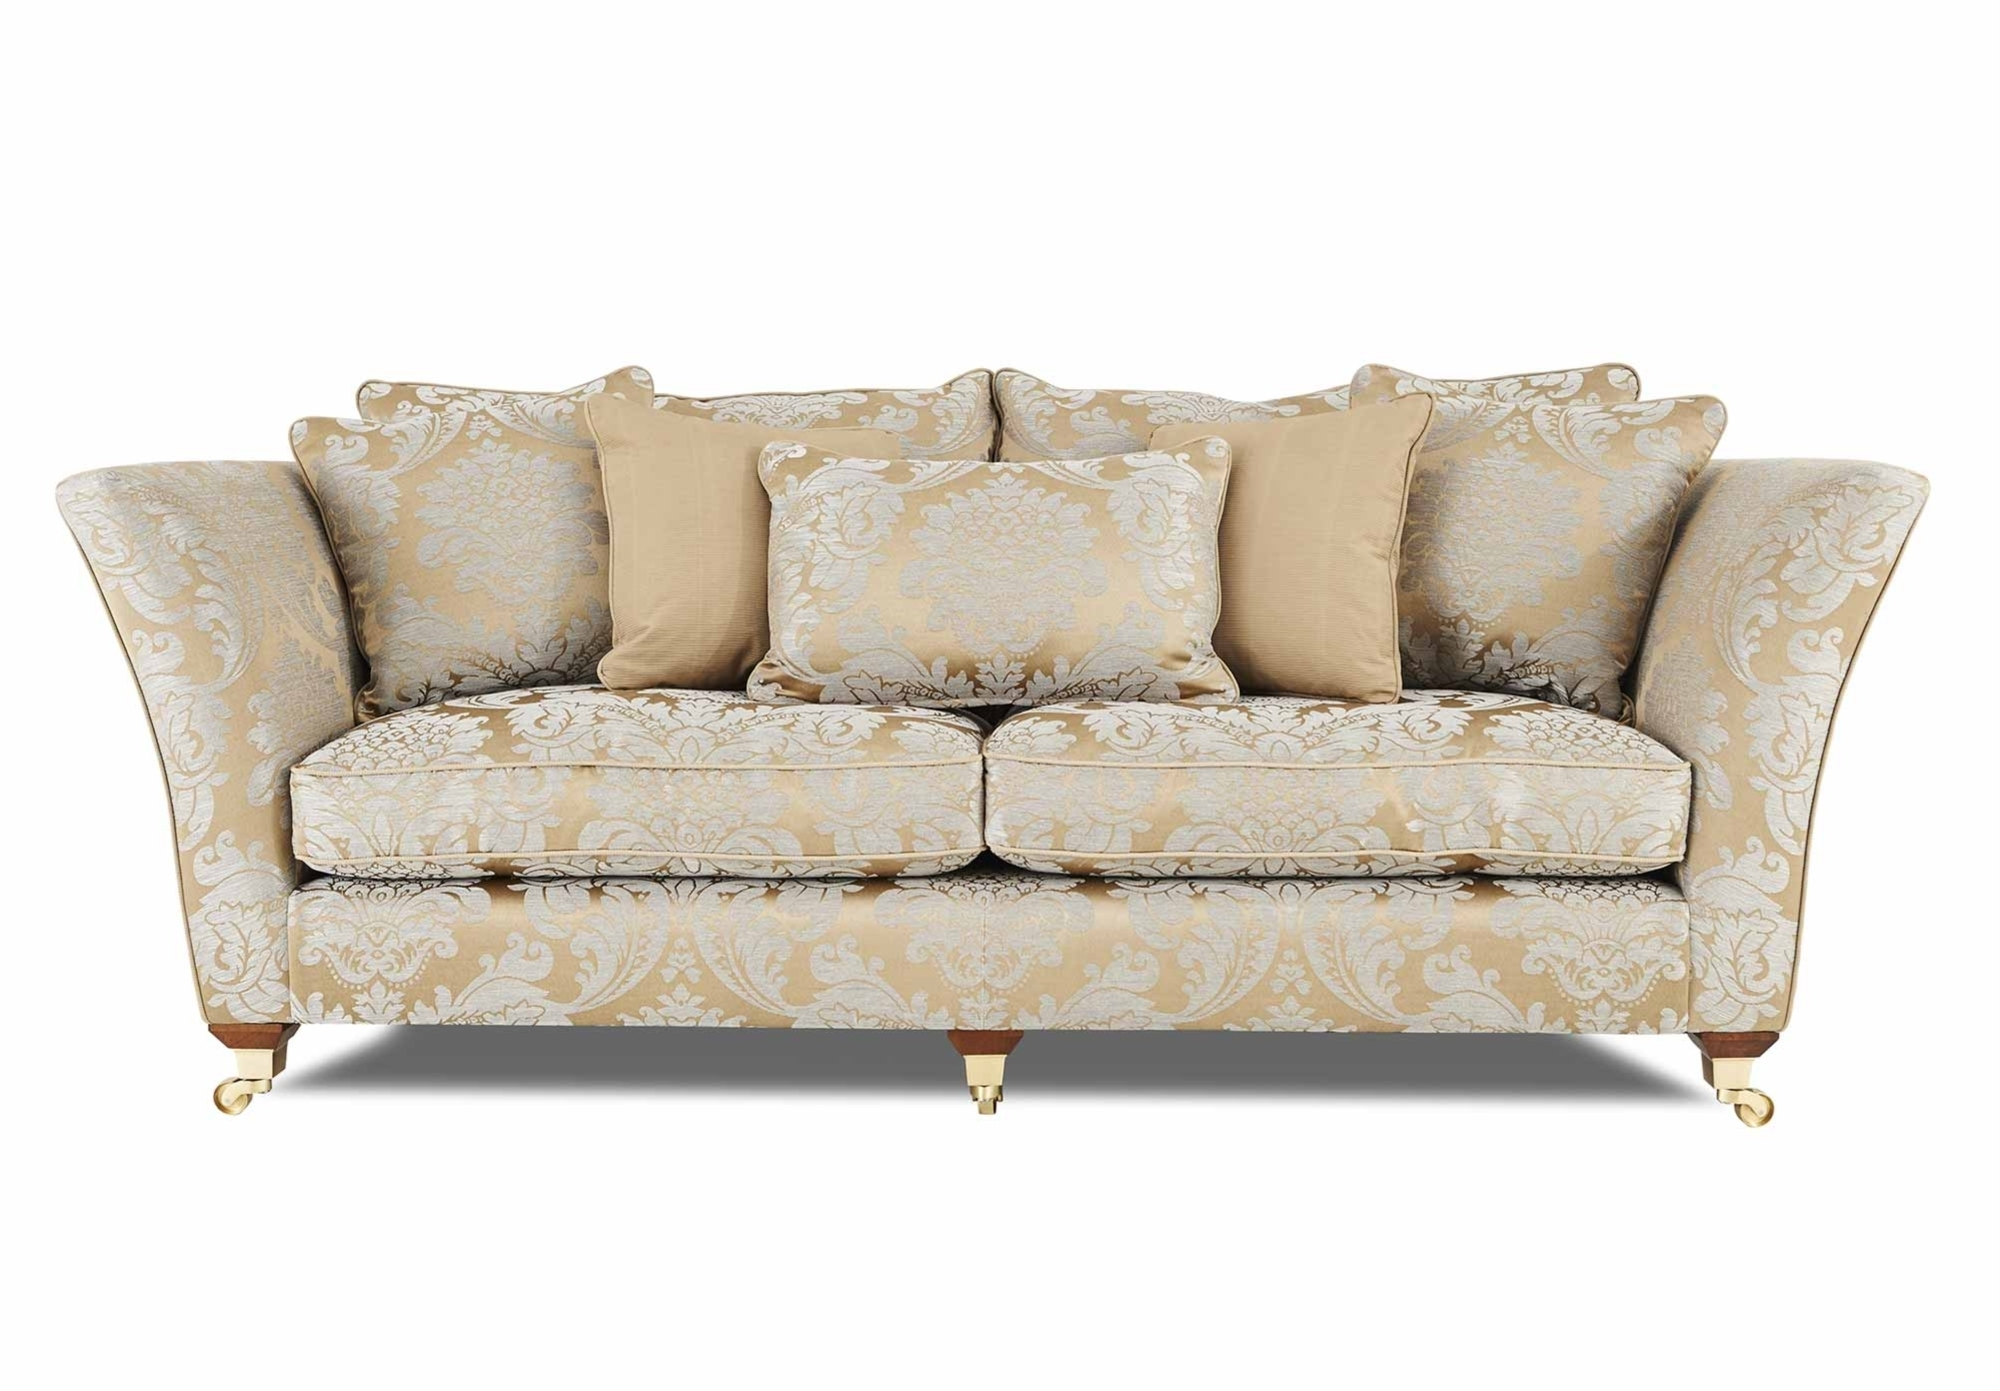 Widely Used Furniture : Contemporary Modern Tufted Sofa Delano 120 Tufted In Kitchener Sectional Sofas (View 9 of 15)